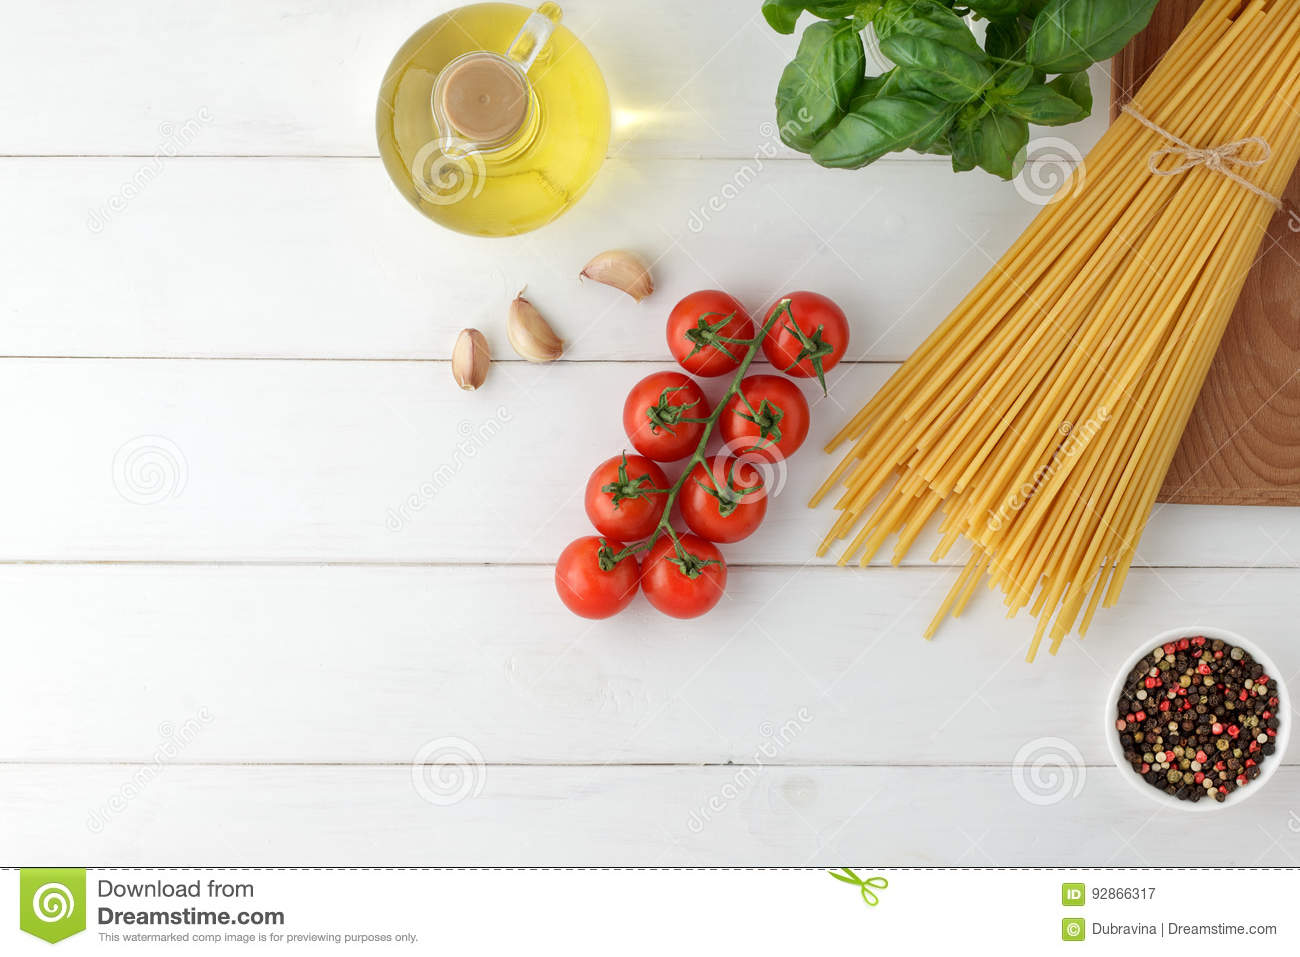 Culinary pasta background with dry bucatini, fresh basil and tomatoes on white wooden table.